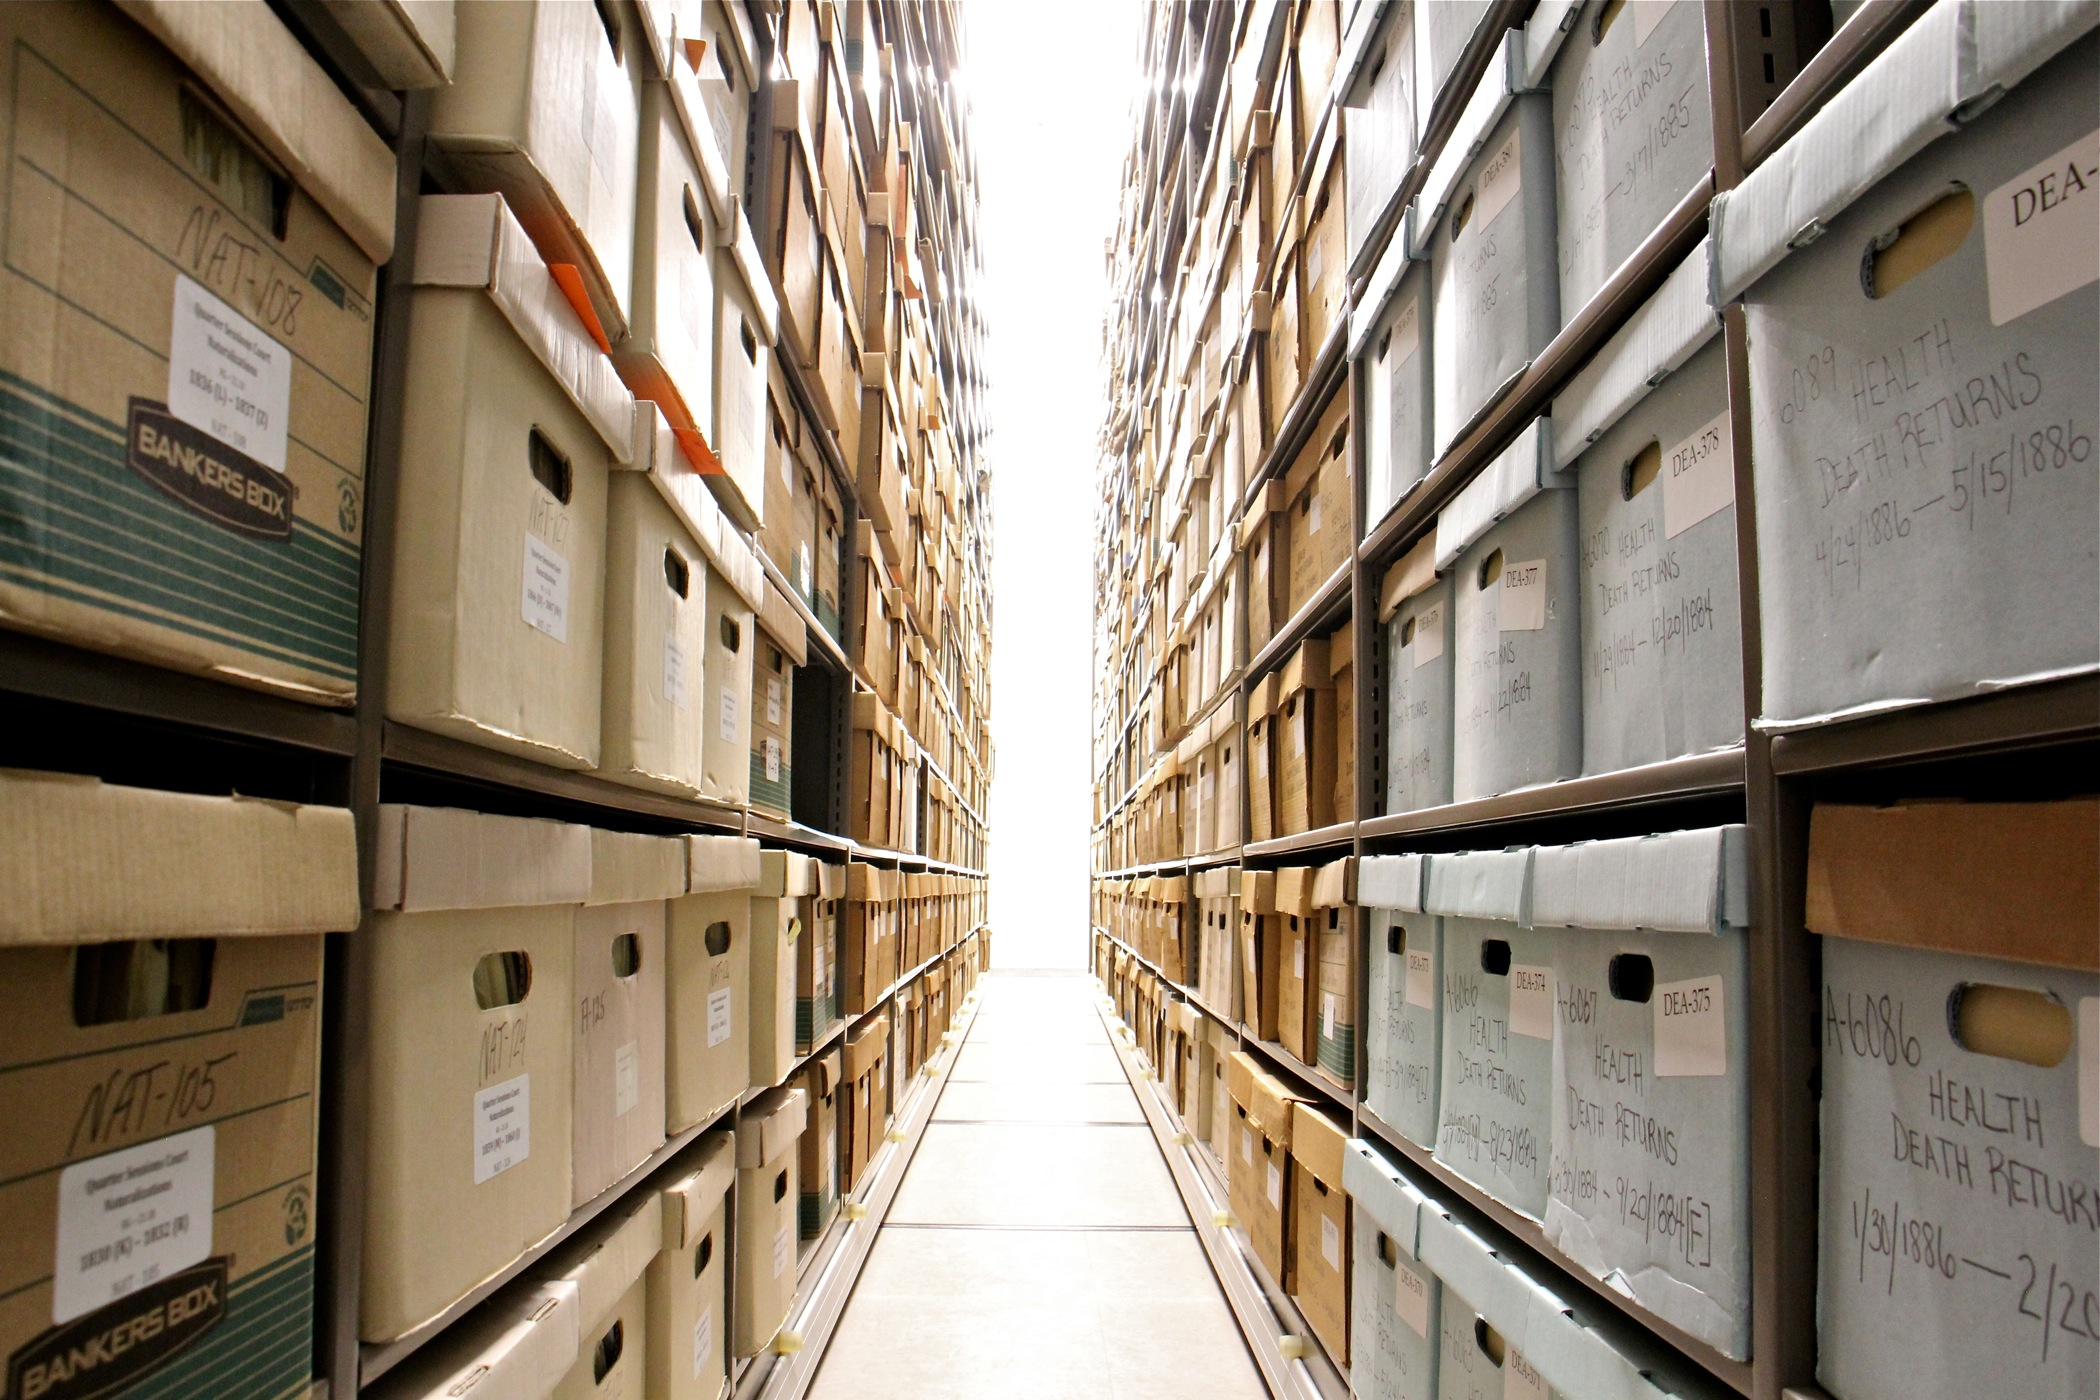 At Philadelphia's new City Archives, 76 rows of high-density shelving contain hundreds of years of records.